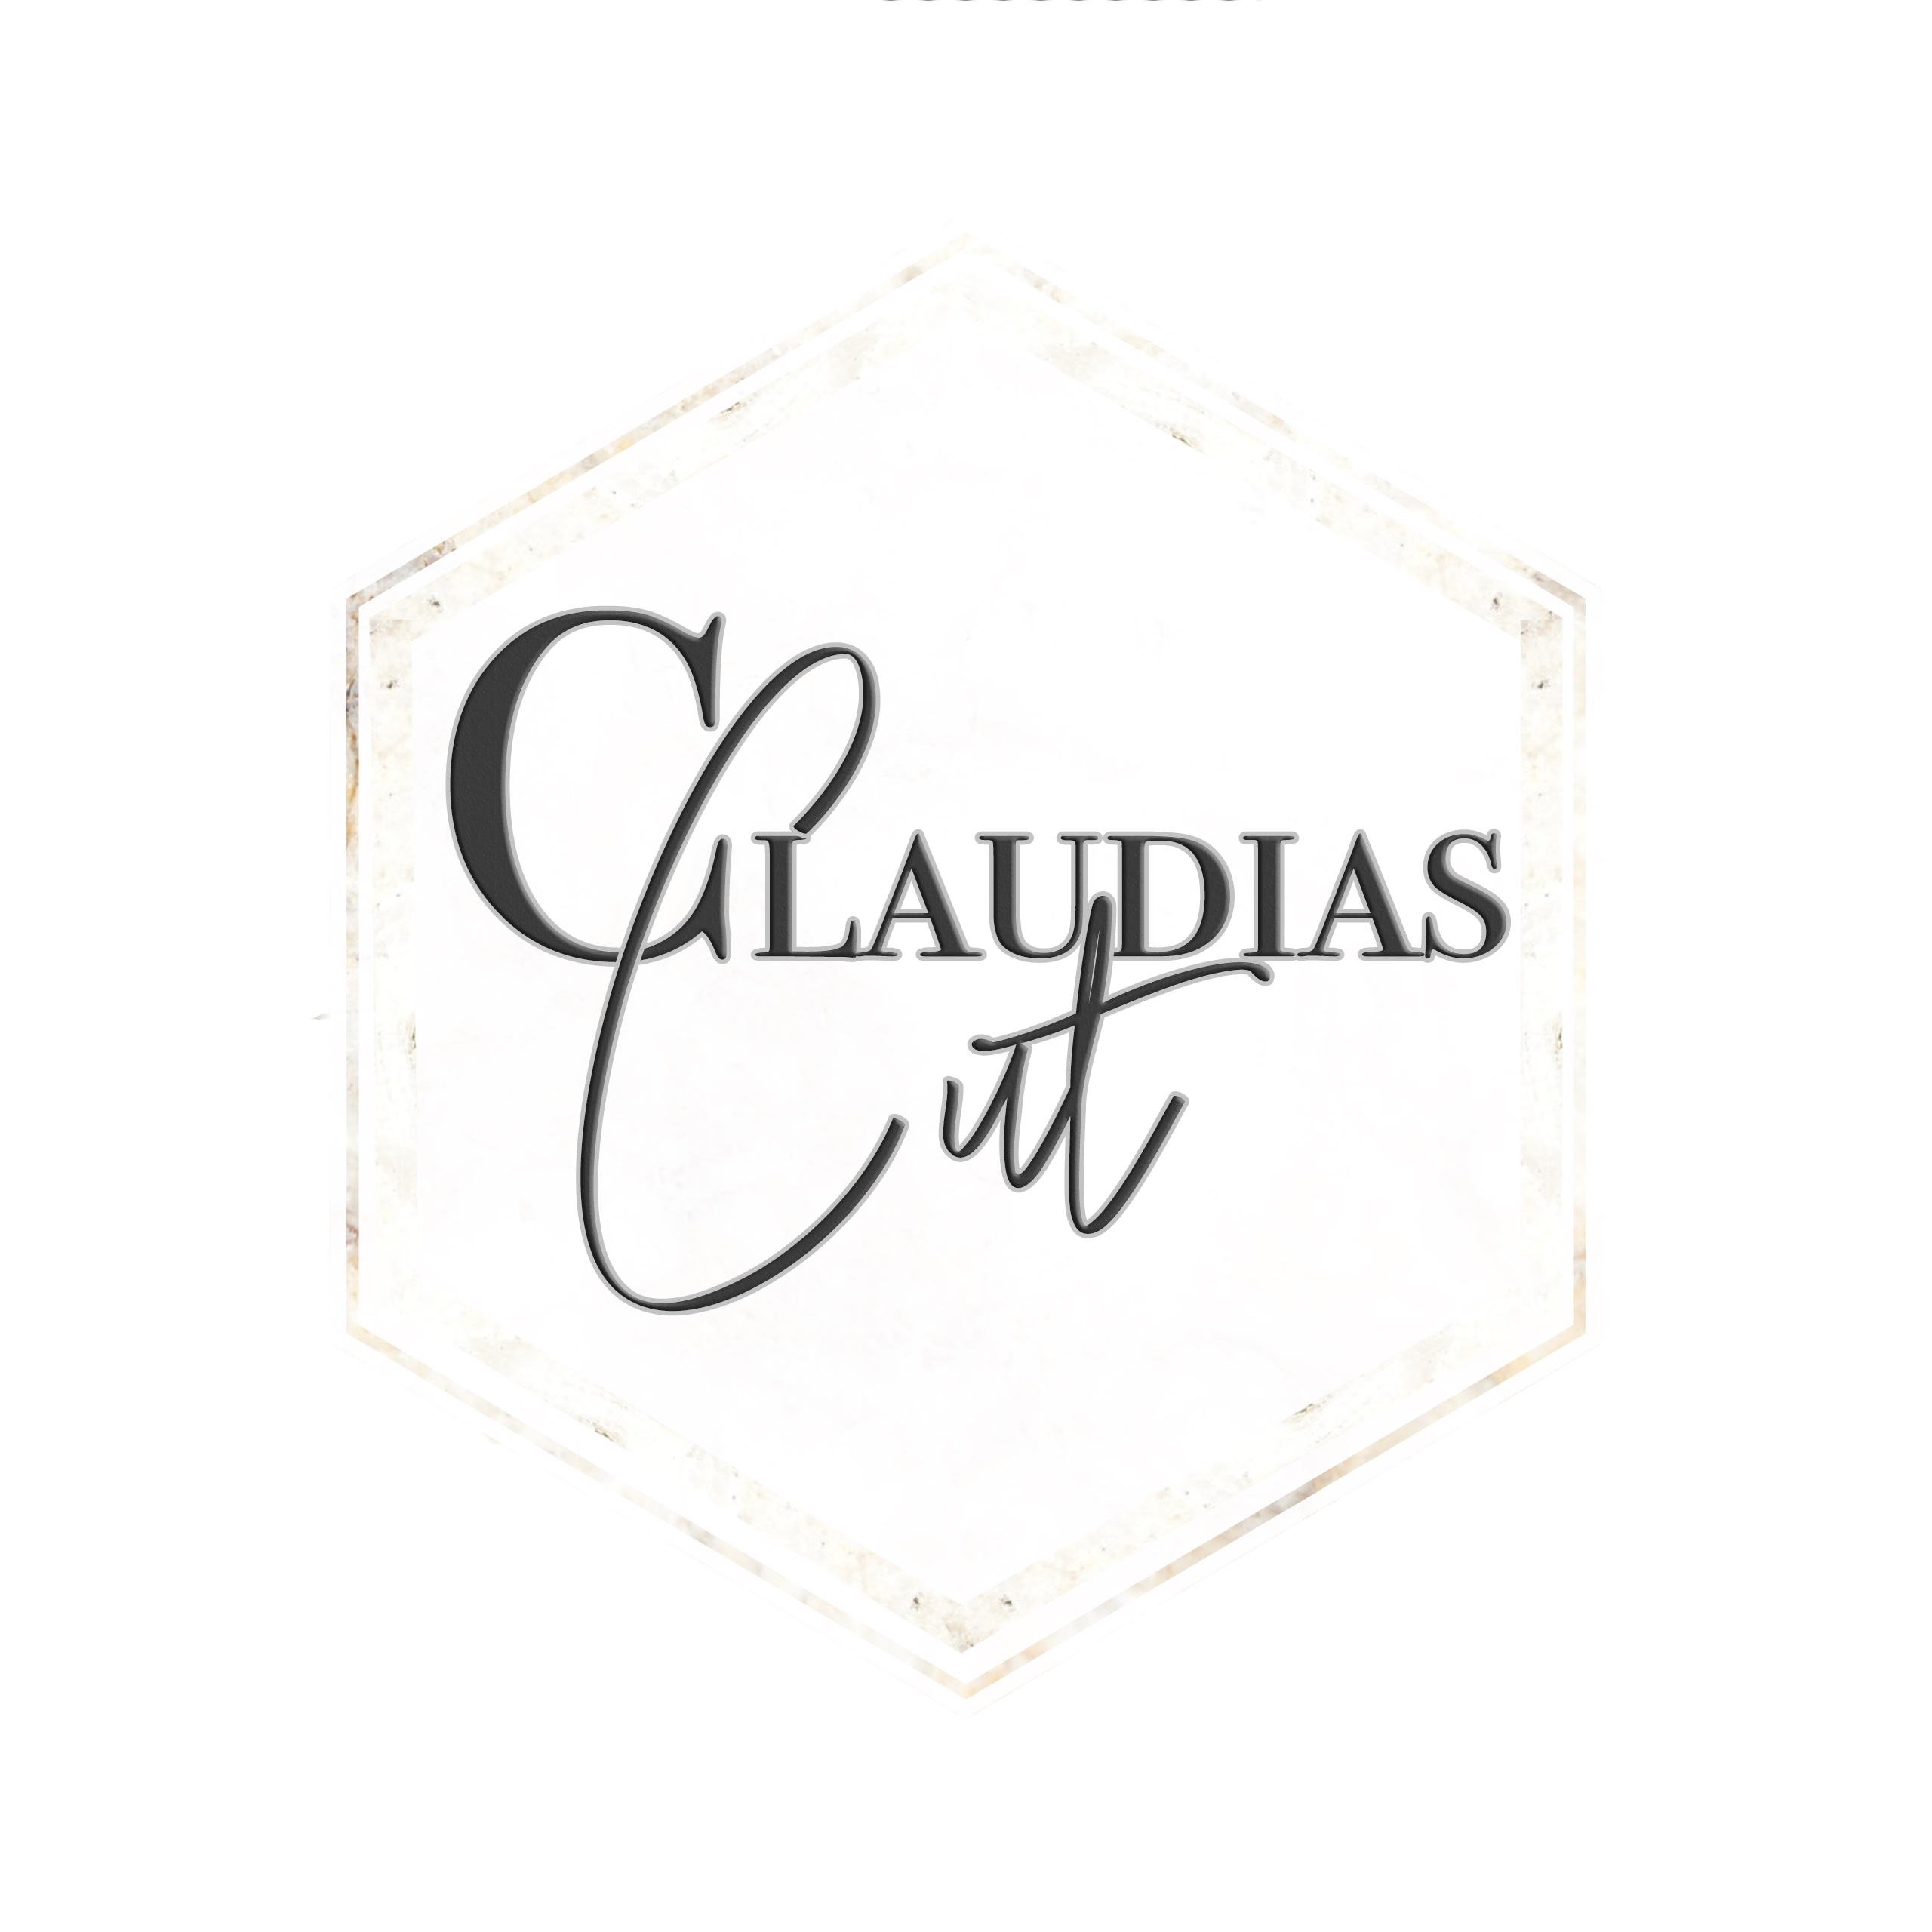 Claudias Cut